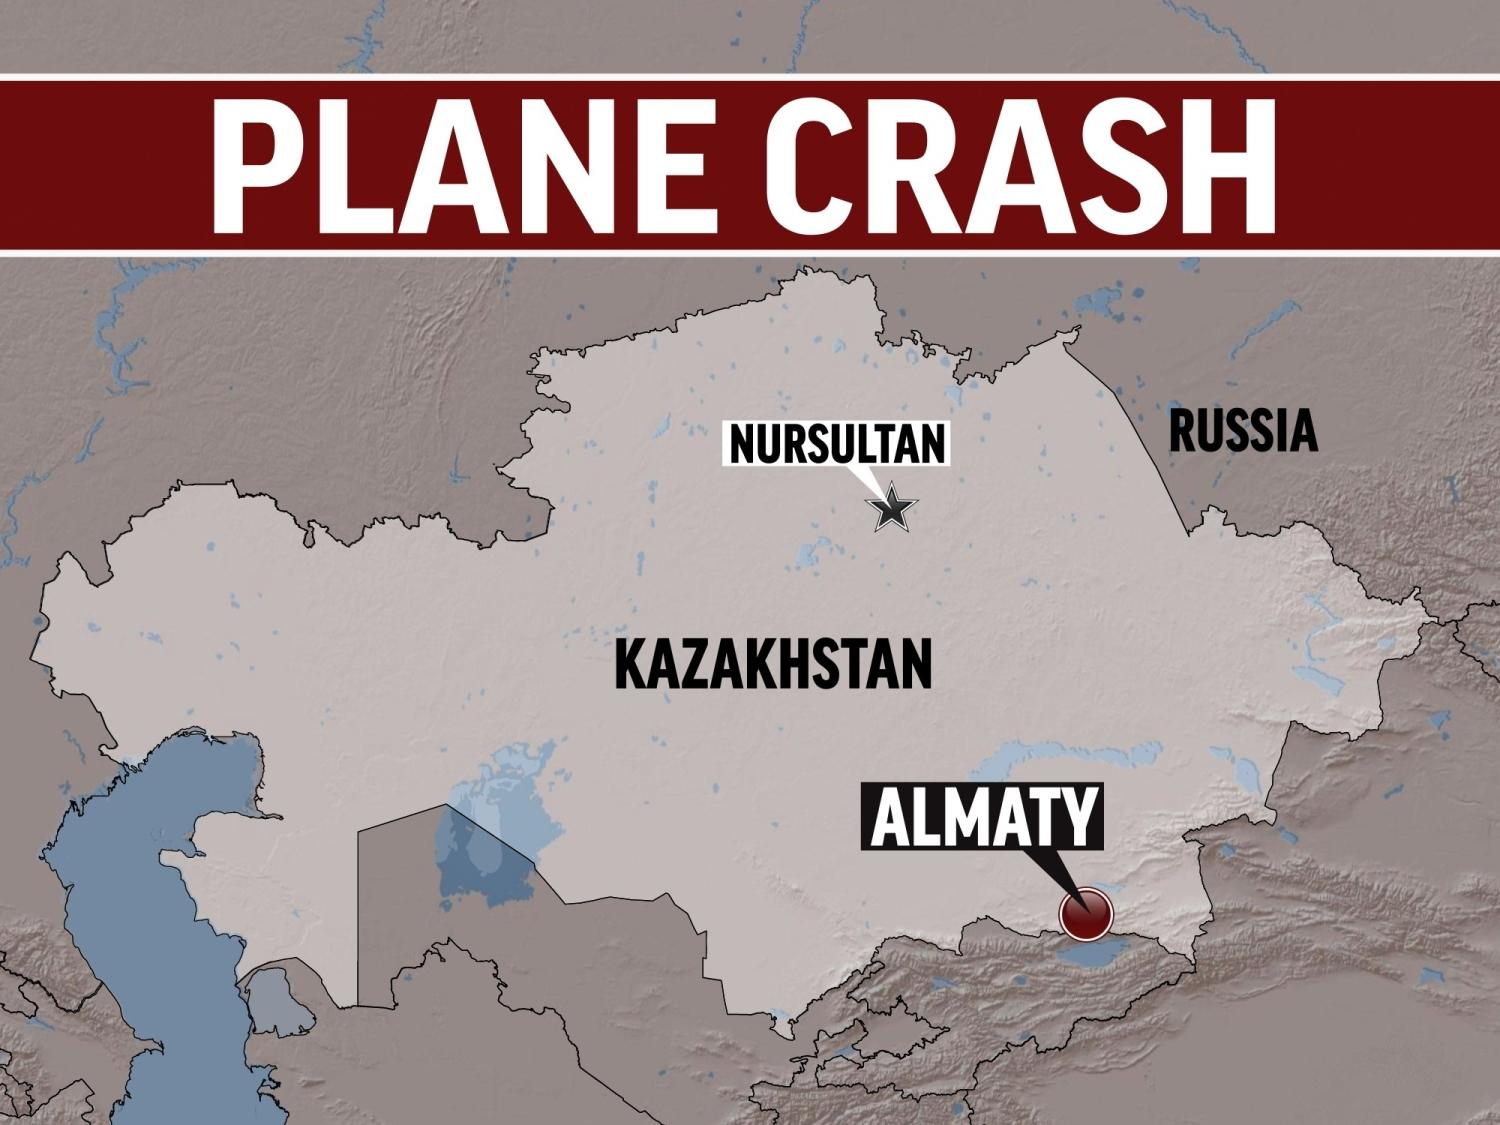 Kazakhstan shaded relief map highlighted, with NURSULTAN (capital) and ALMATY locators, with lettering PLANE CRASH, finished graphic